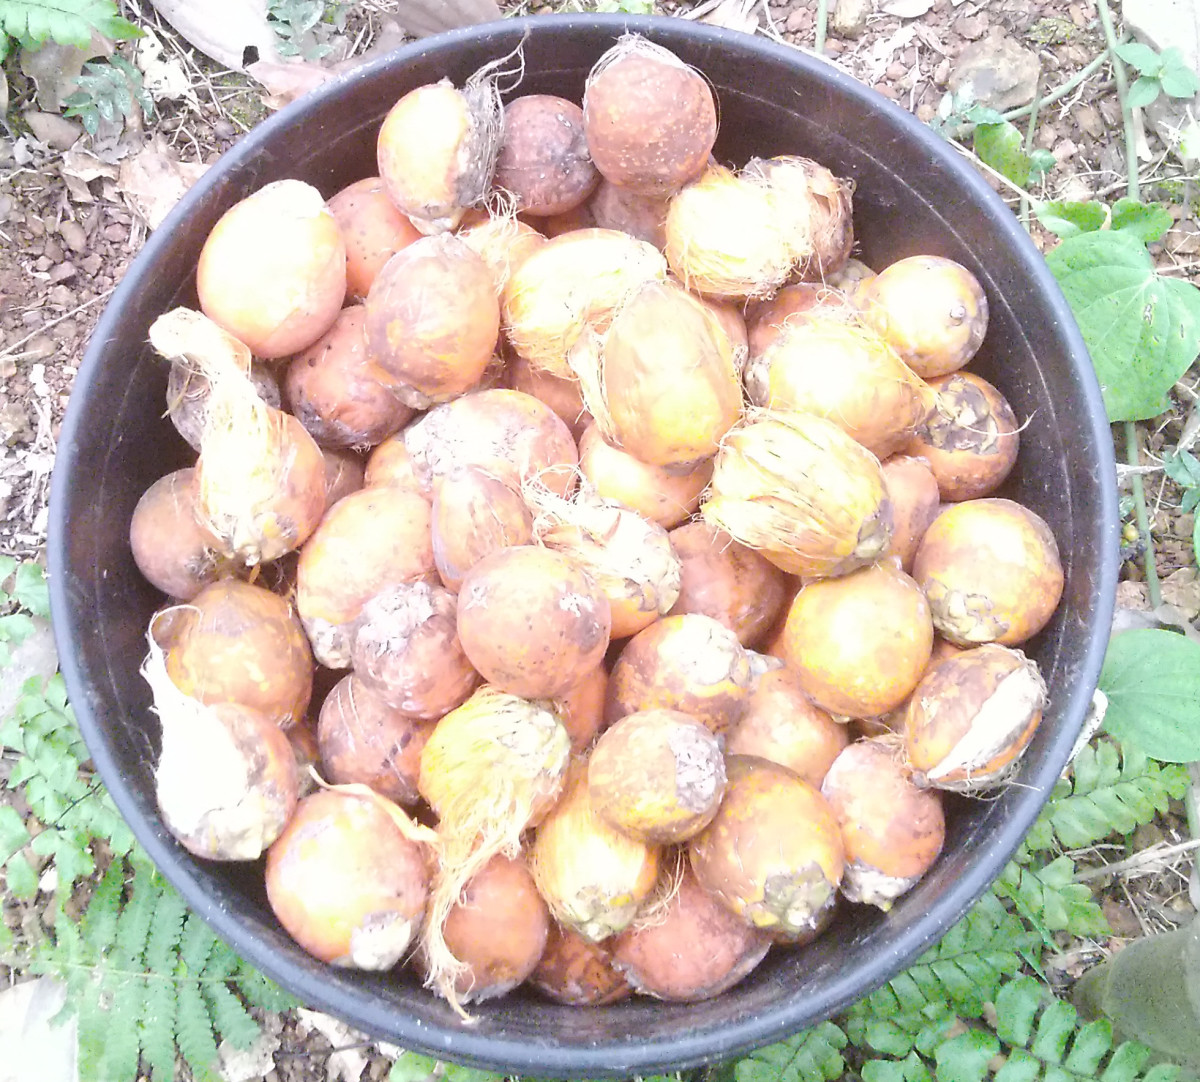 Ripe arecanuts hand-picked from the plantation